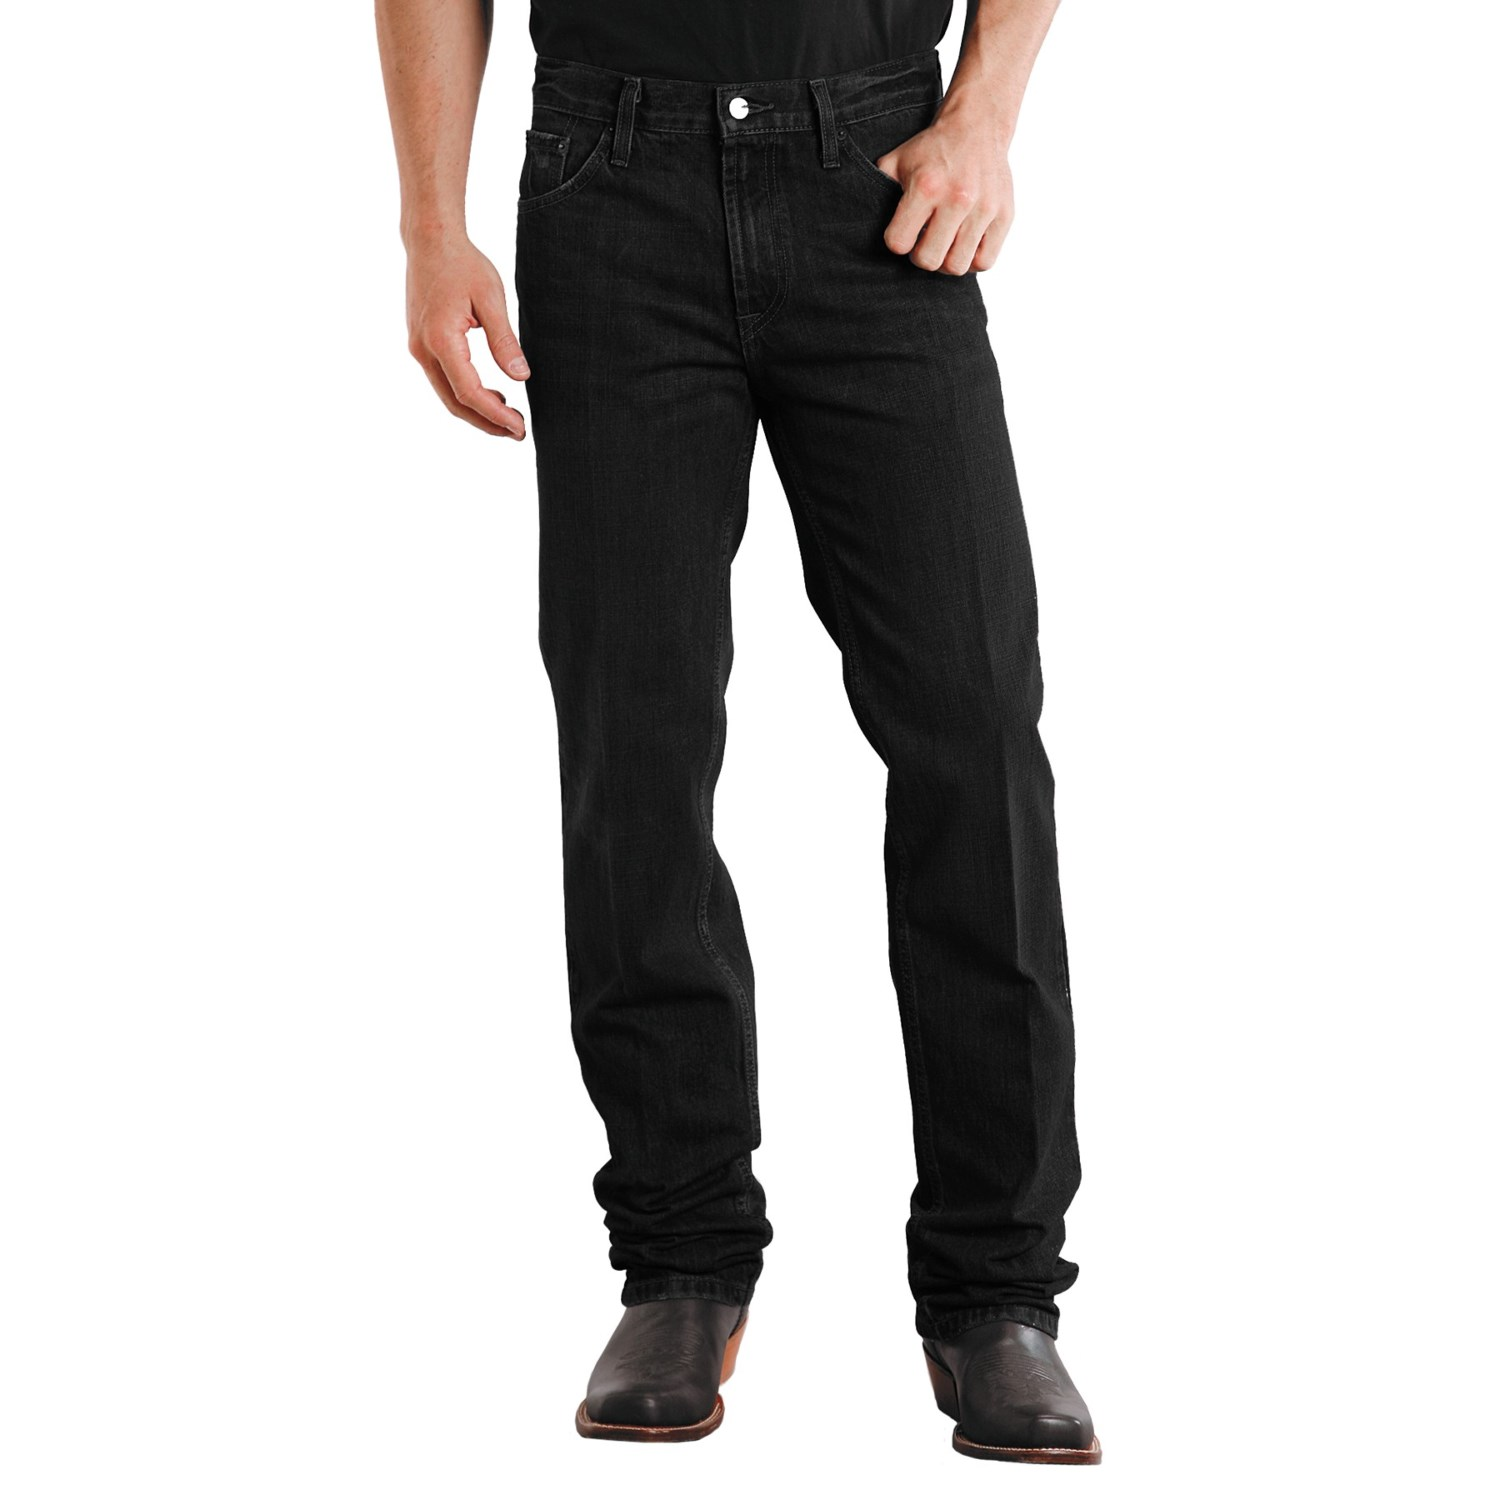 Buffalo David Bitton Mens Six slim Straight Leg Jeans. Sold by Tags Weekly. $ $ LEE Men's Modern Series Straight Leg Jeans (33) Sold by Sears. $ $ - $ Buffalo David Bitton Mens 5 Pocket Slim Straight Leg Jeans. Sold by Tags Weekly. $ $ - $